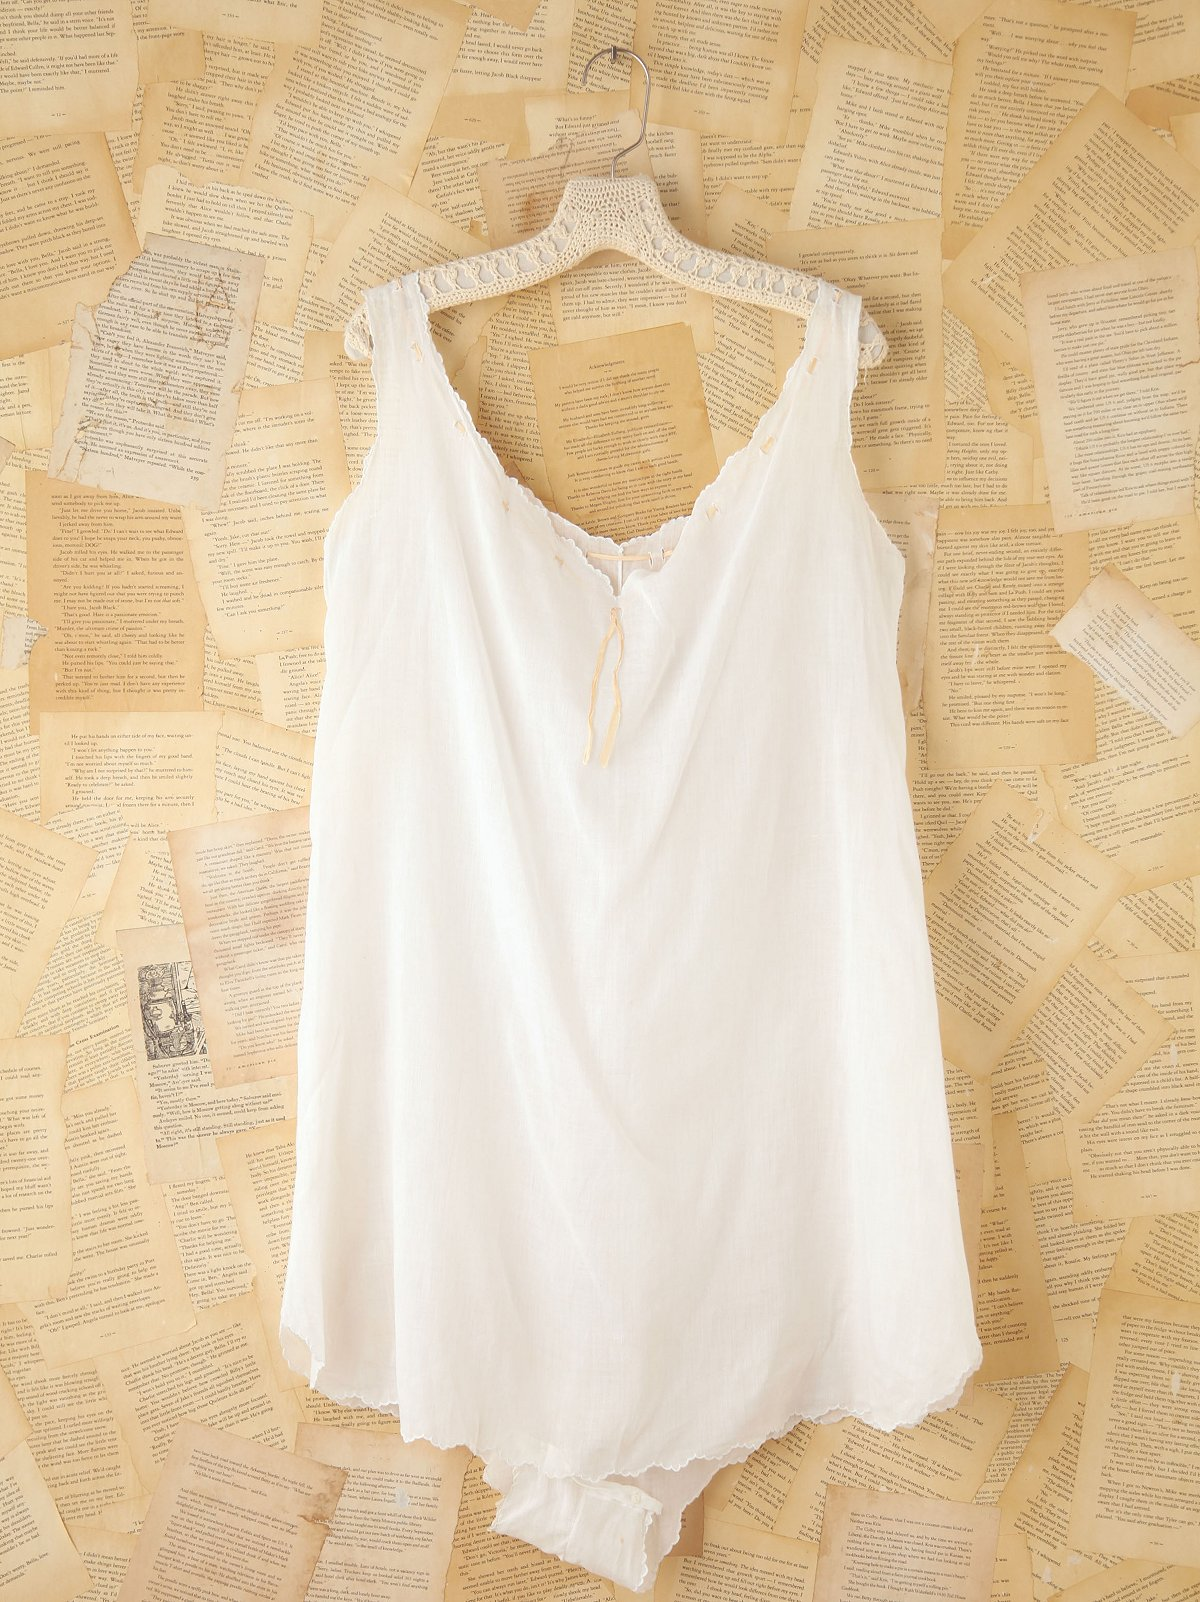 Vintage Sleeveless Cotton Romper